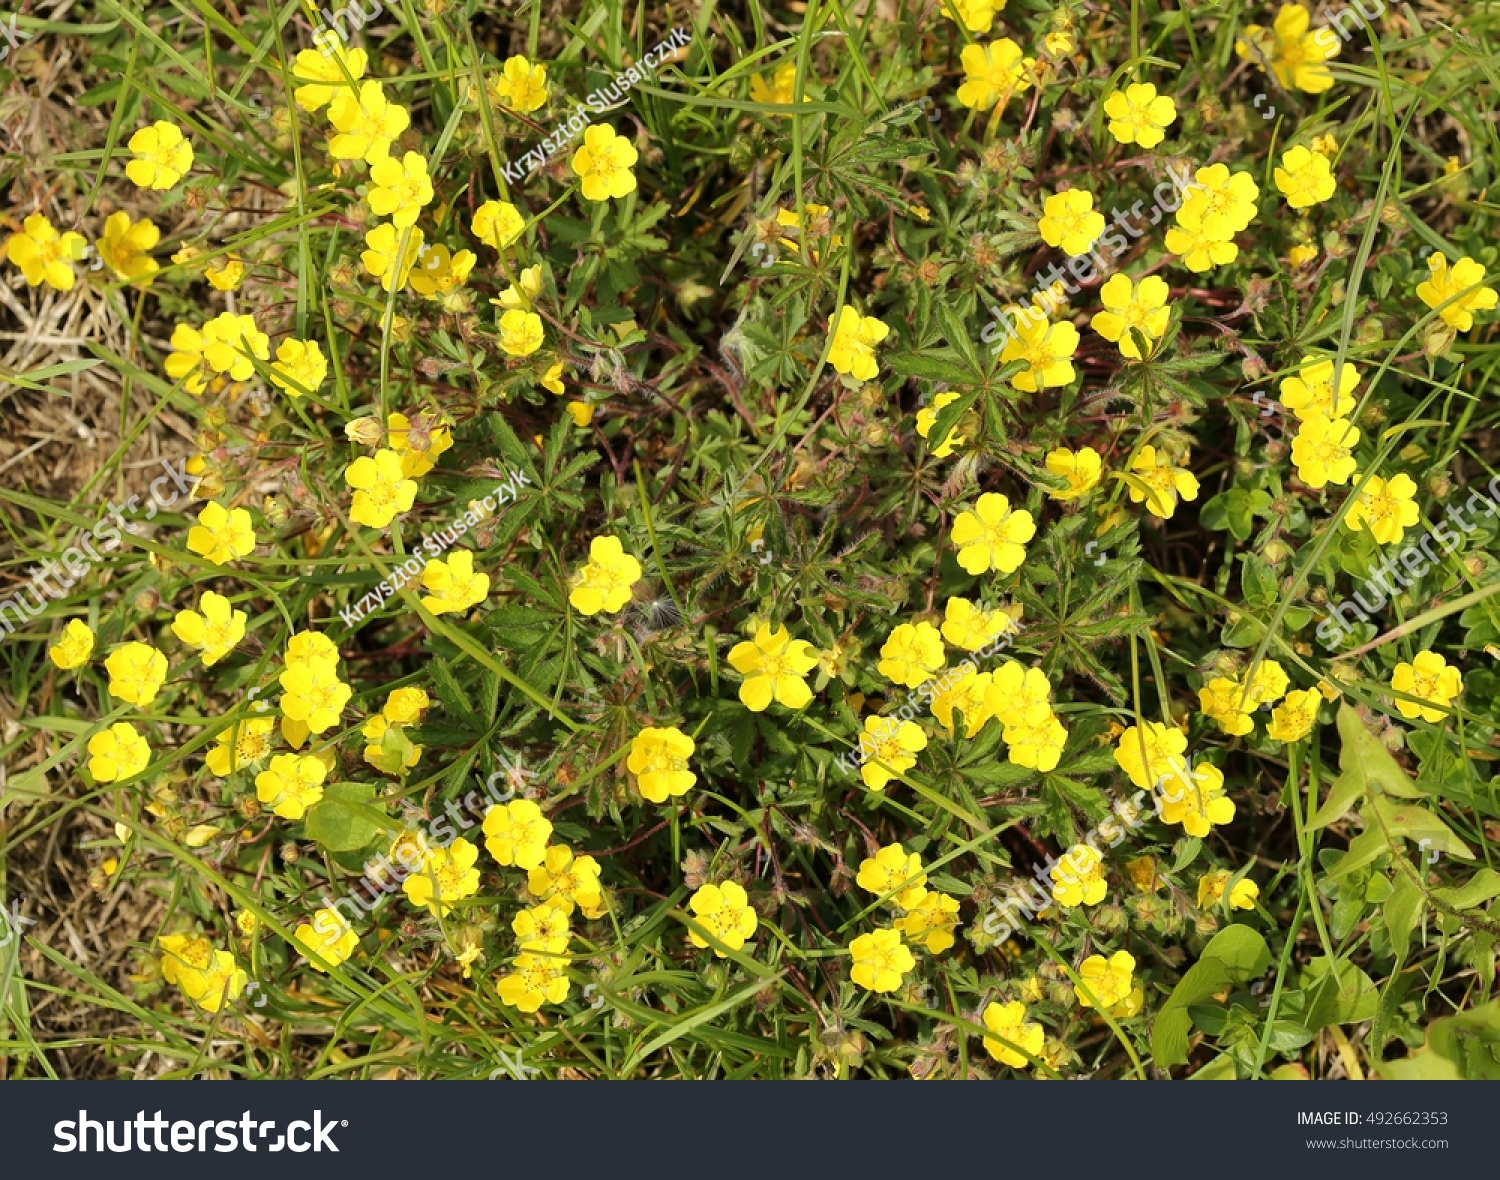 Background Yellow Dandelions With Green Leaves Ez Canvas